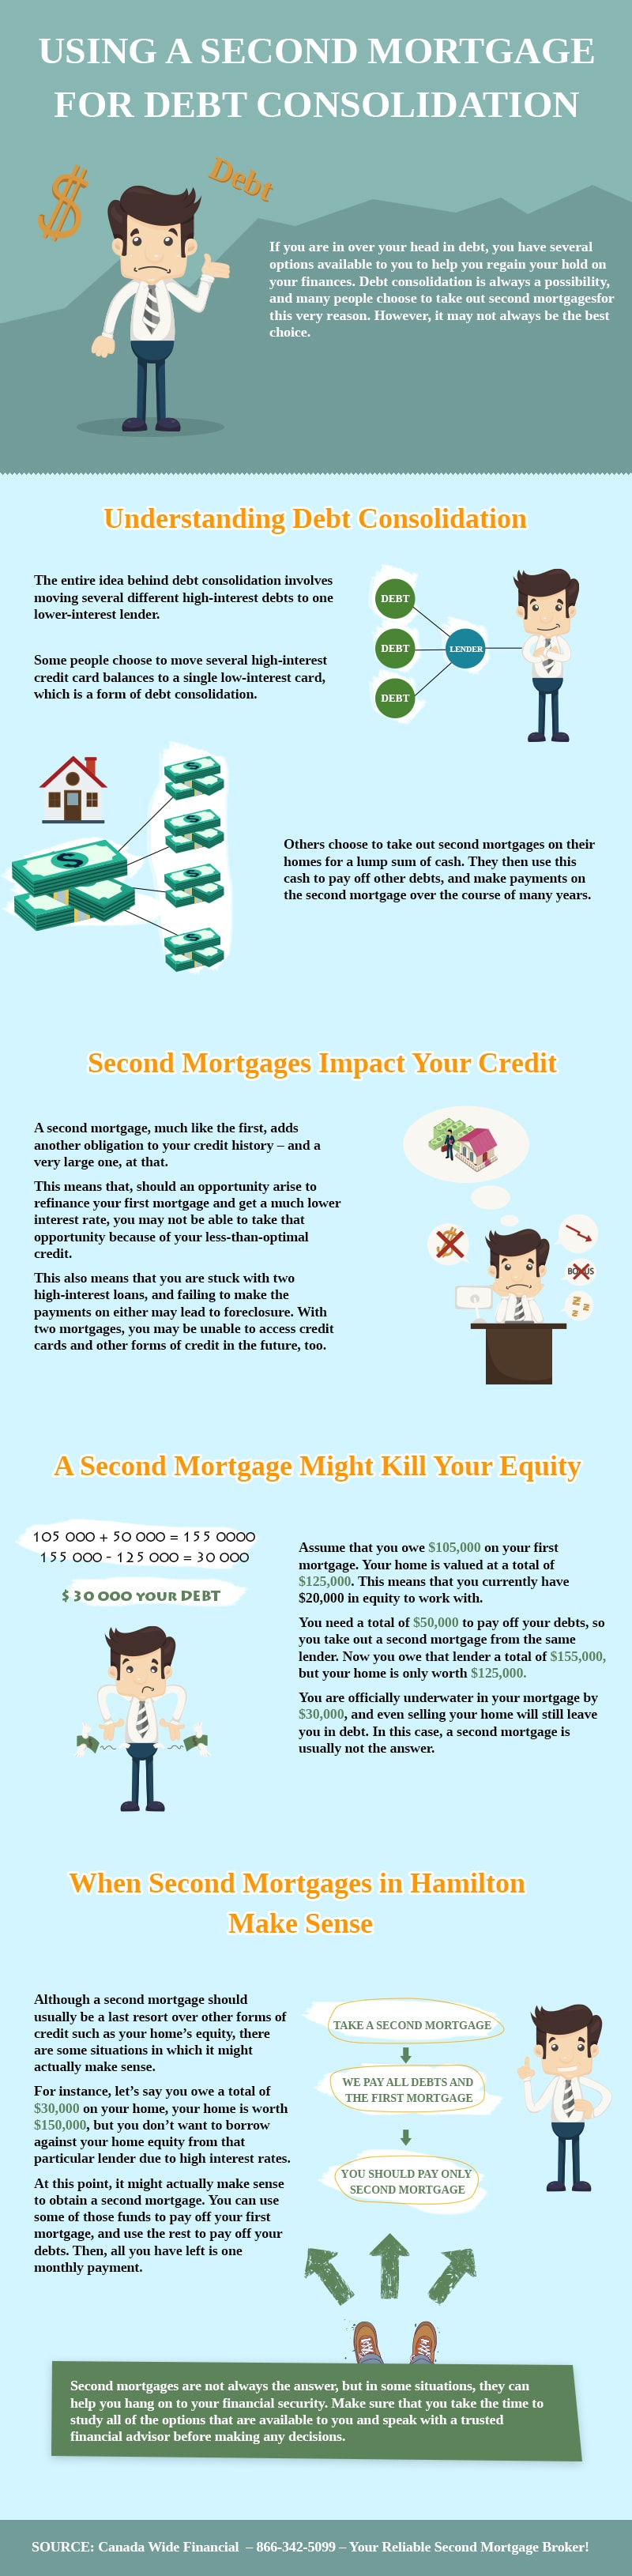 Using a Second Mortgage for Debt Consolidation - Infographic